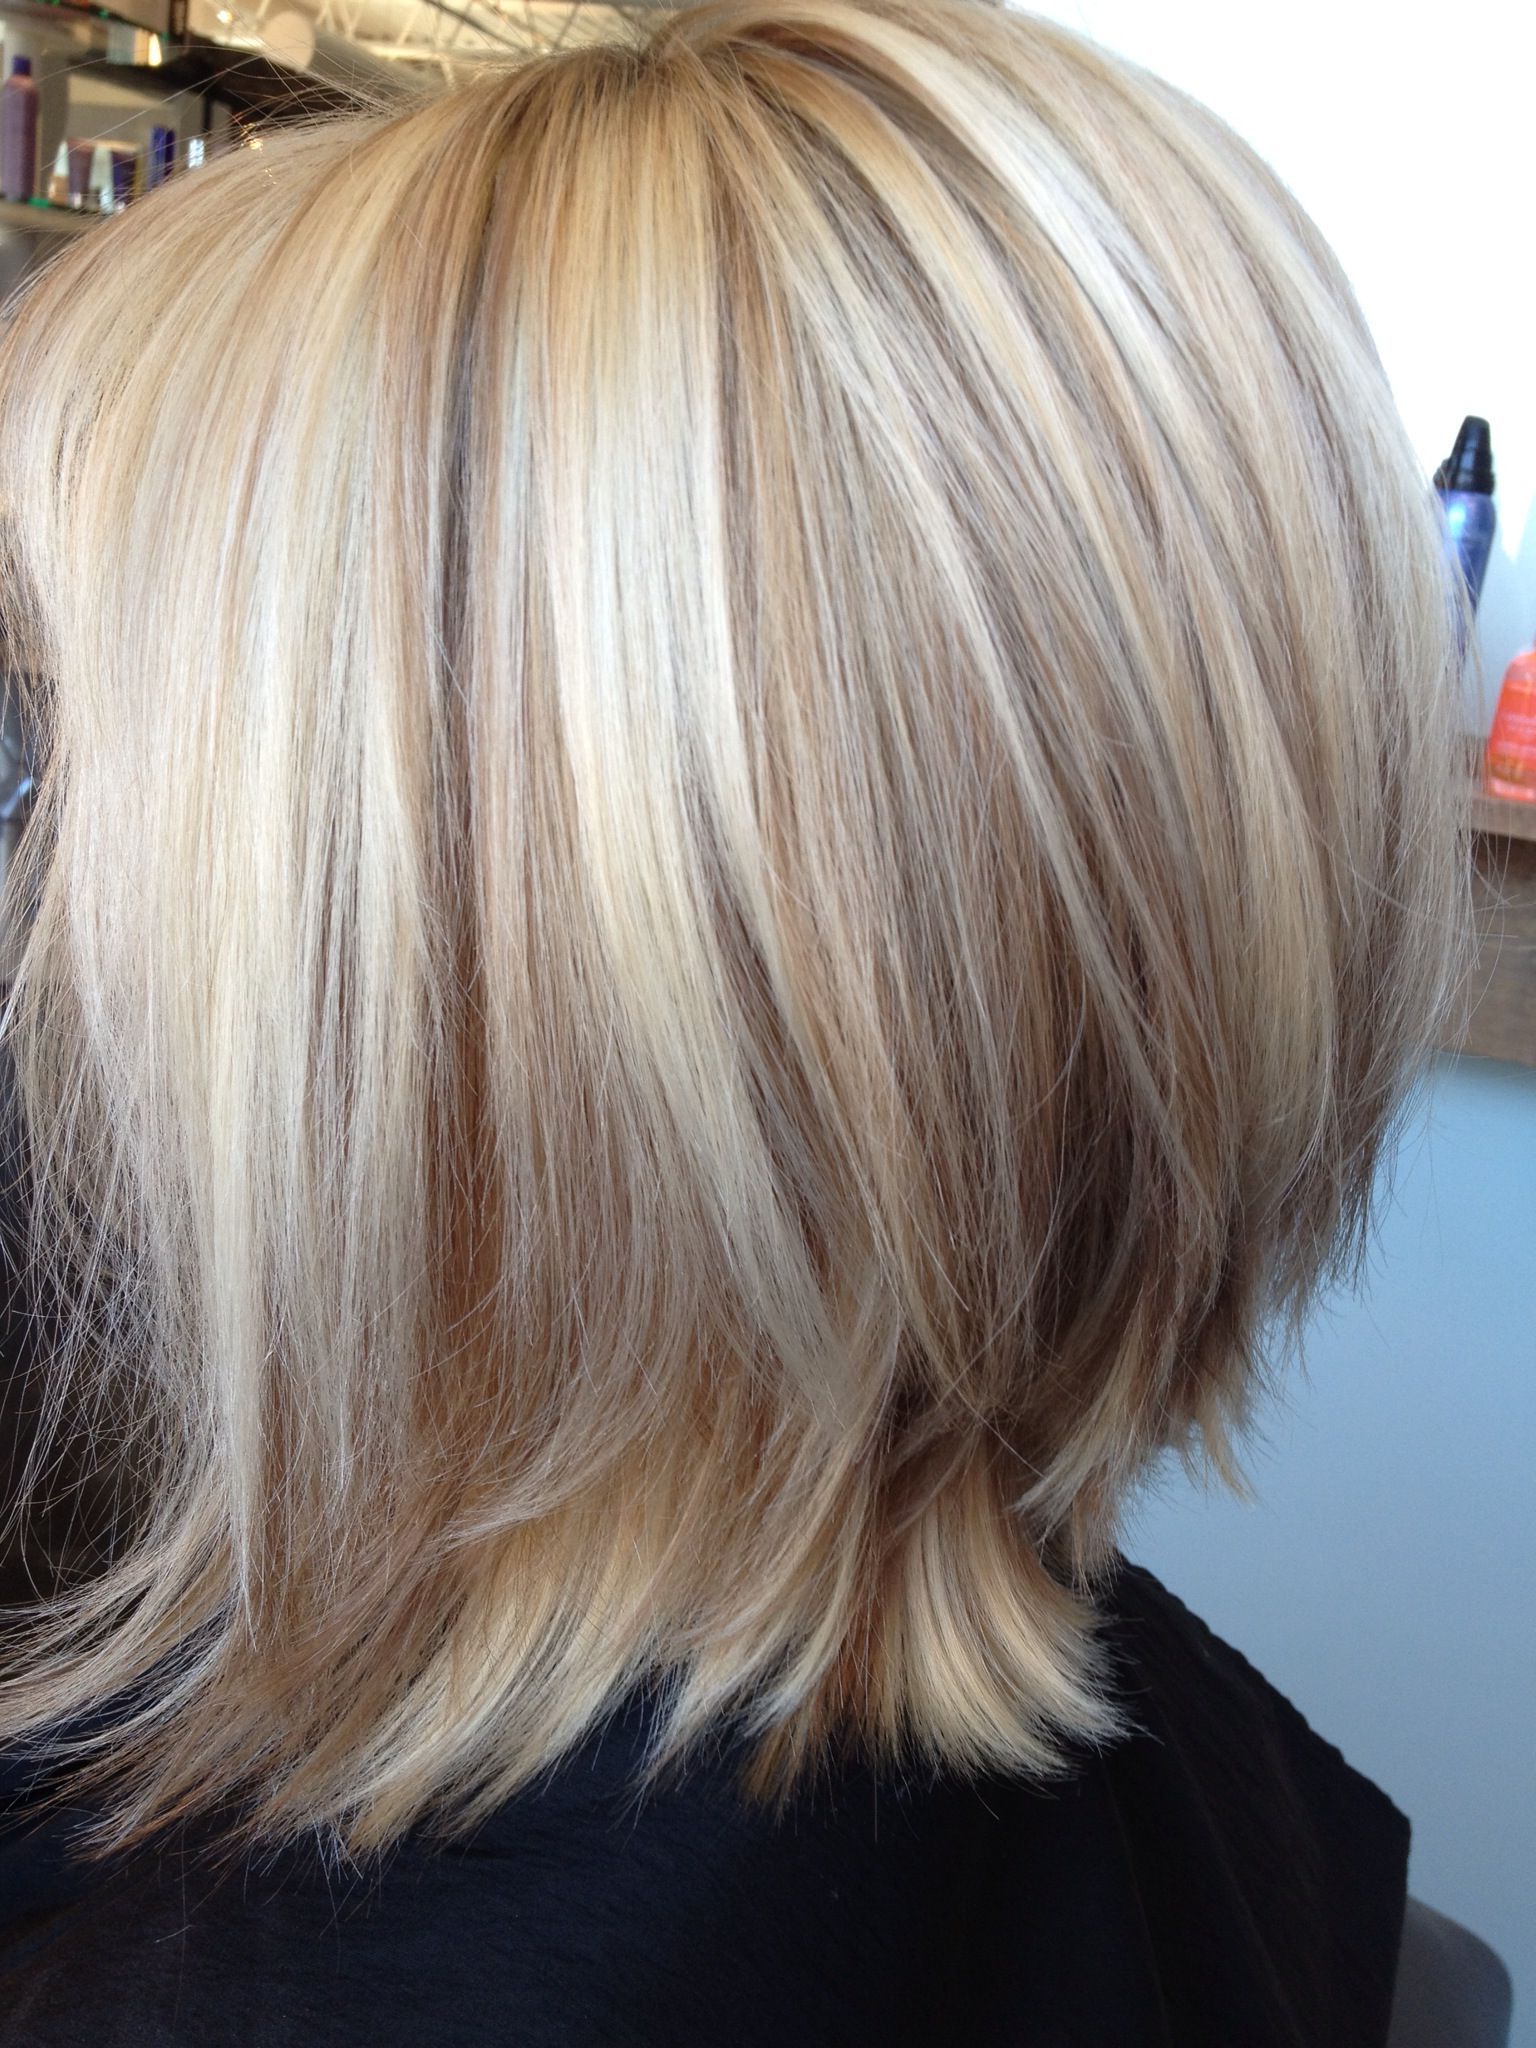 Medium With Regard To Preferred Strawberry Blonde Bob Hairstyles With Flipped Ends (View 8 of 20)